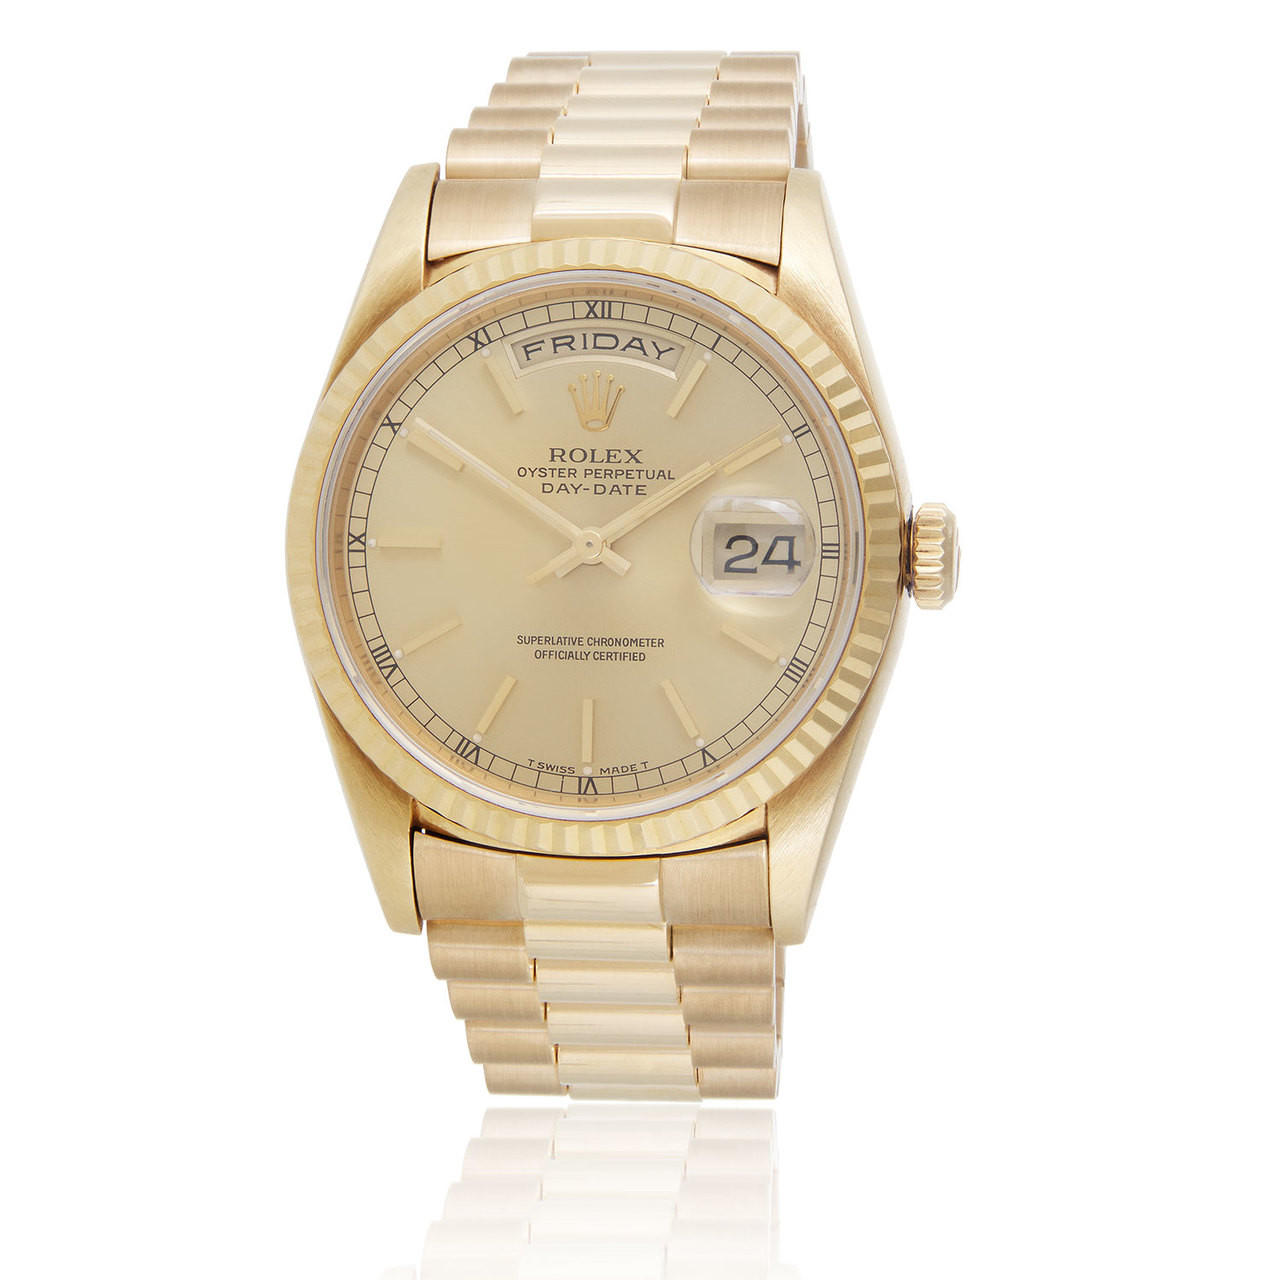 c2619079a5a9 Rolex Presidential Day-Date 18k Yellow Gold Automatic Men s Watch - Shyne  Jewelers